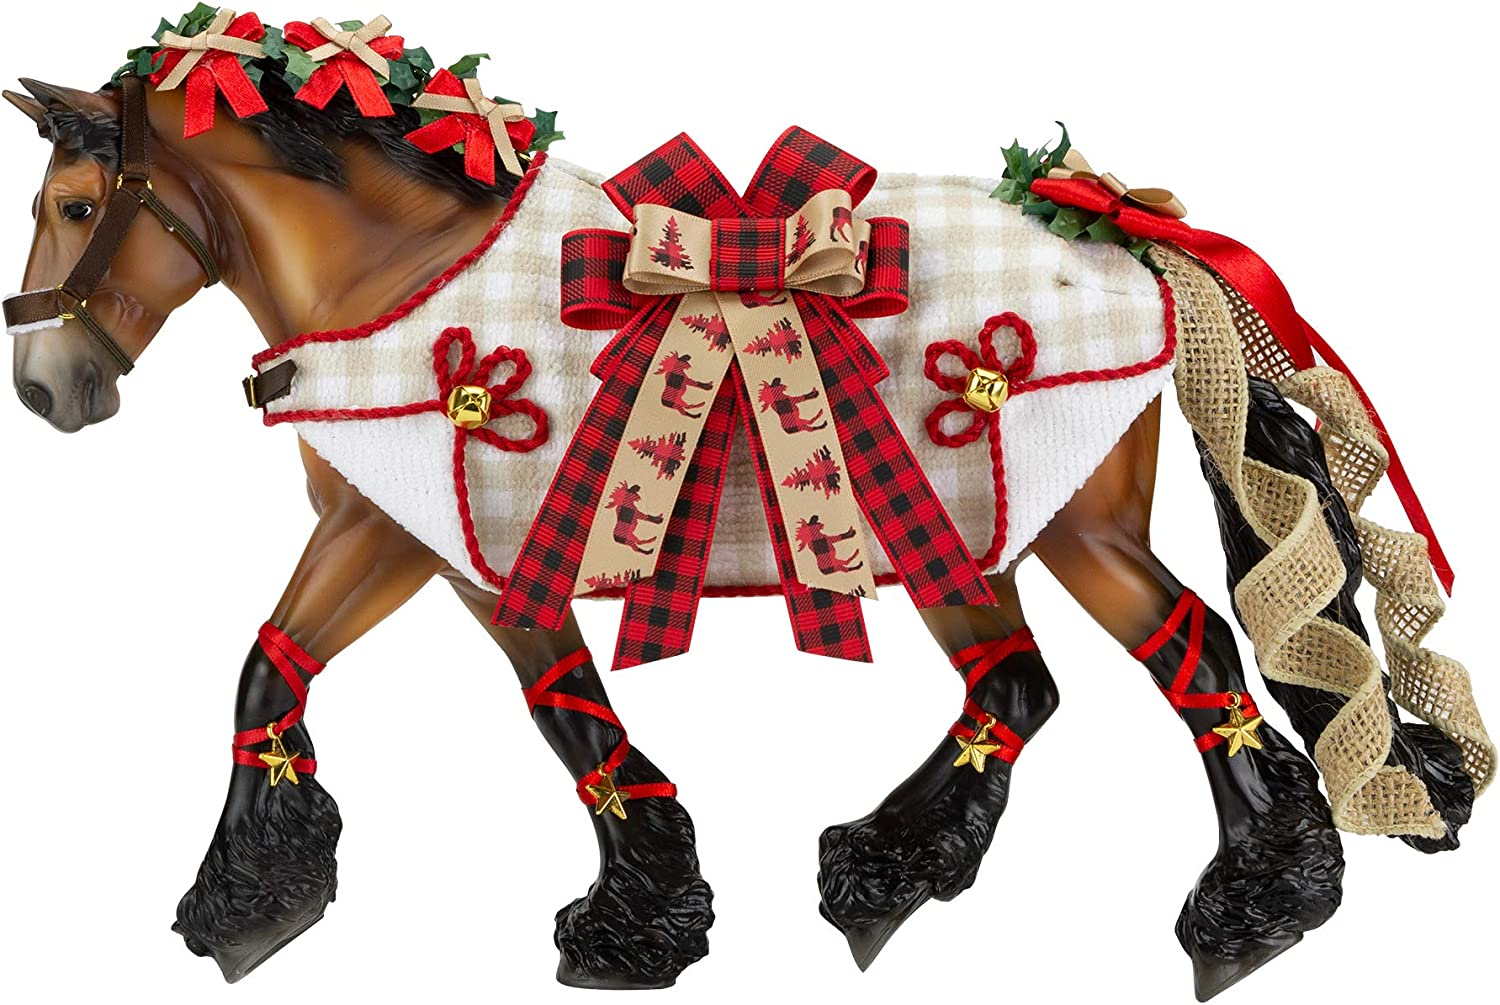 Breyer Horses 2020 Holiday Collection | Traditional Series Holiday Horse - Yuletide Greetings | Model #700123